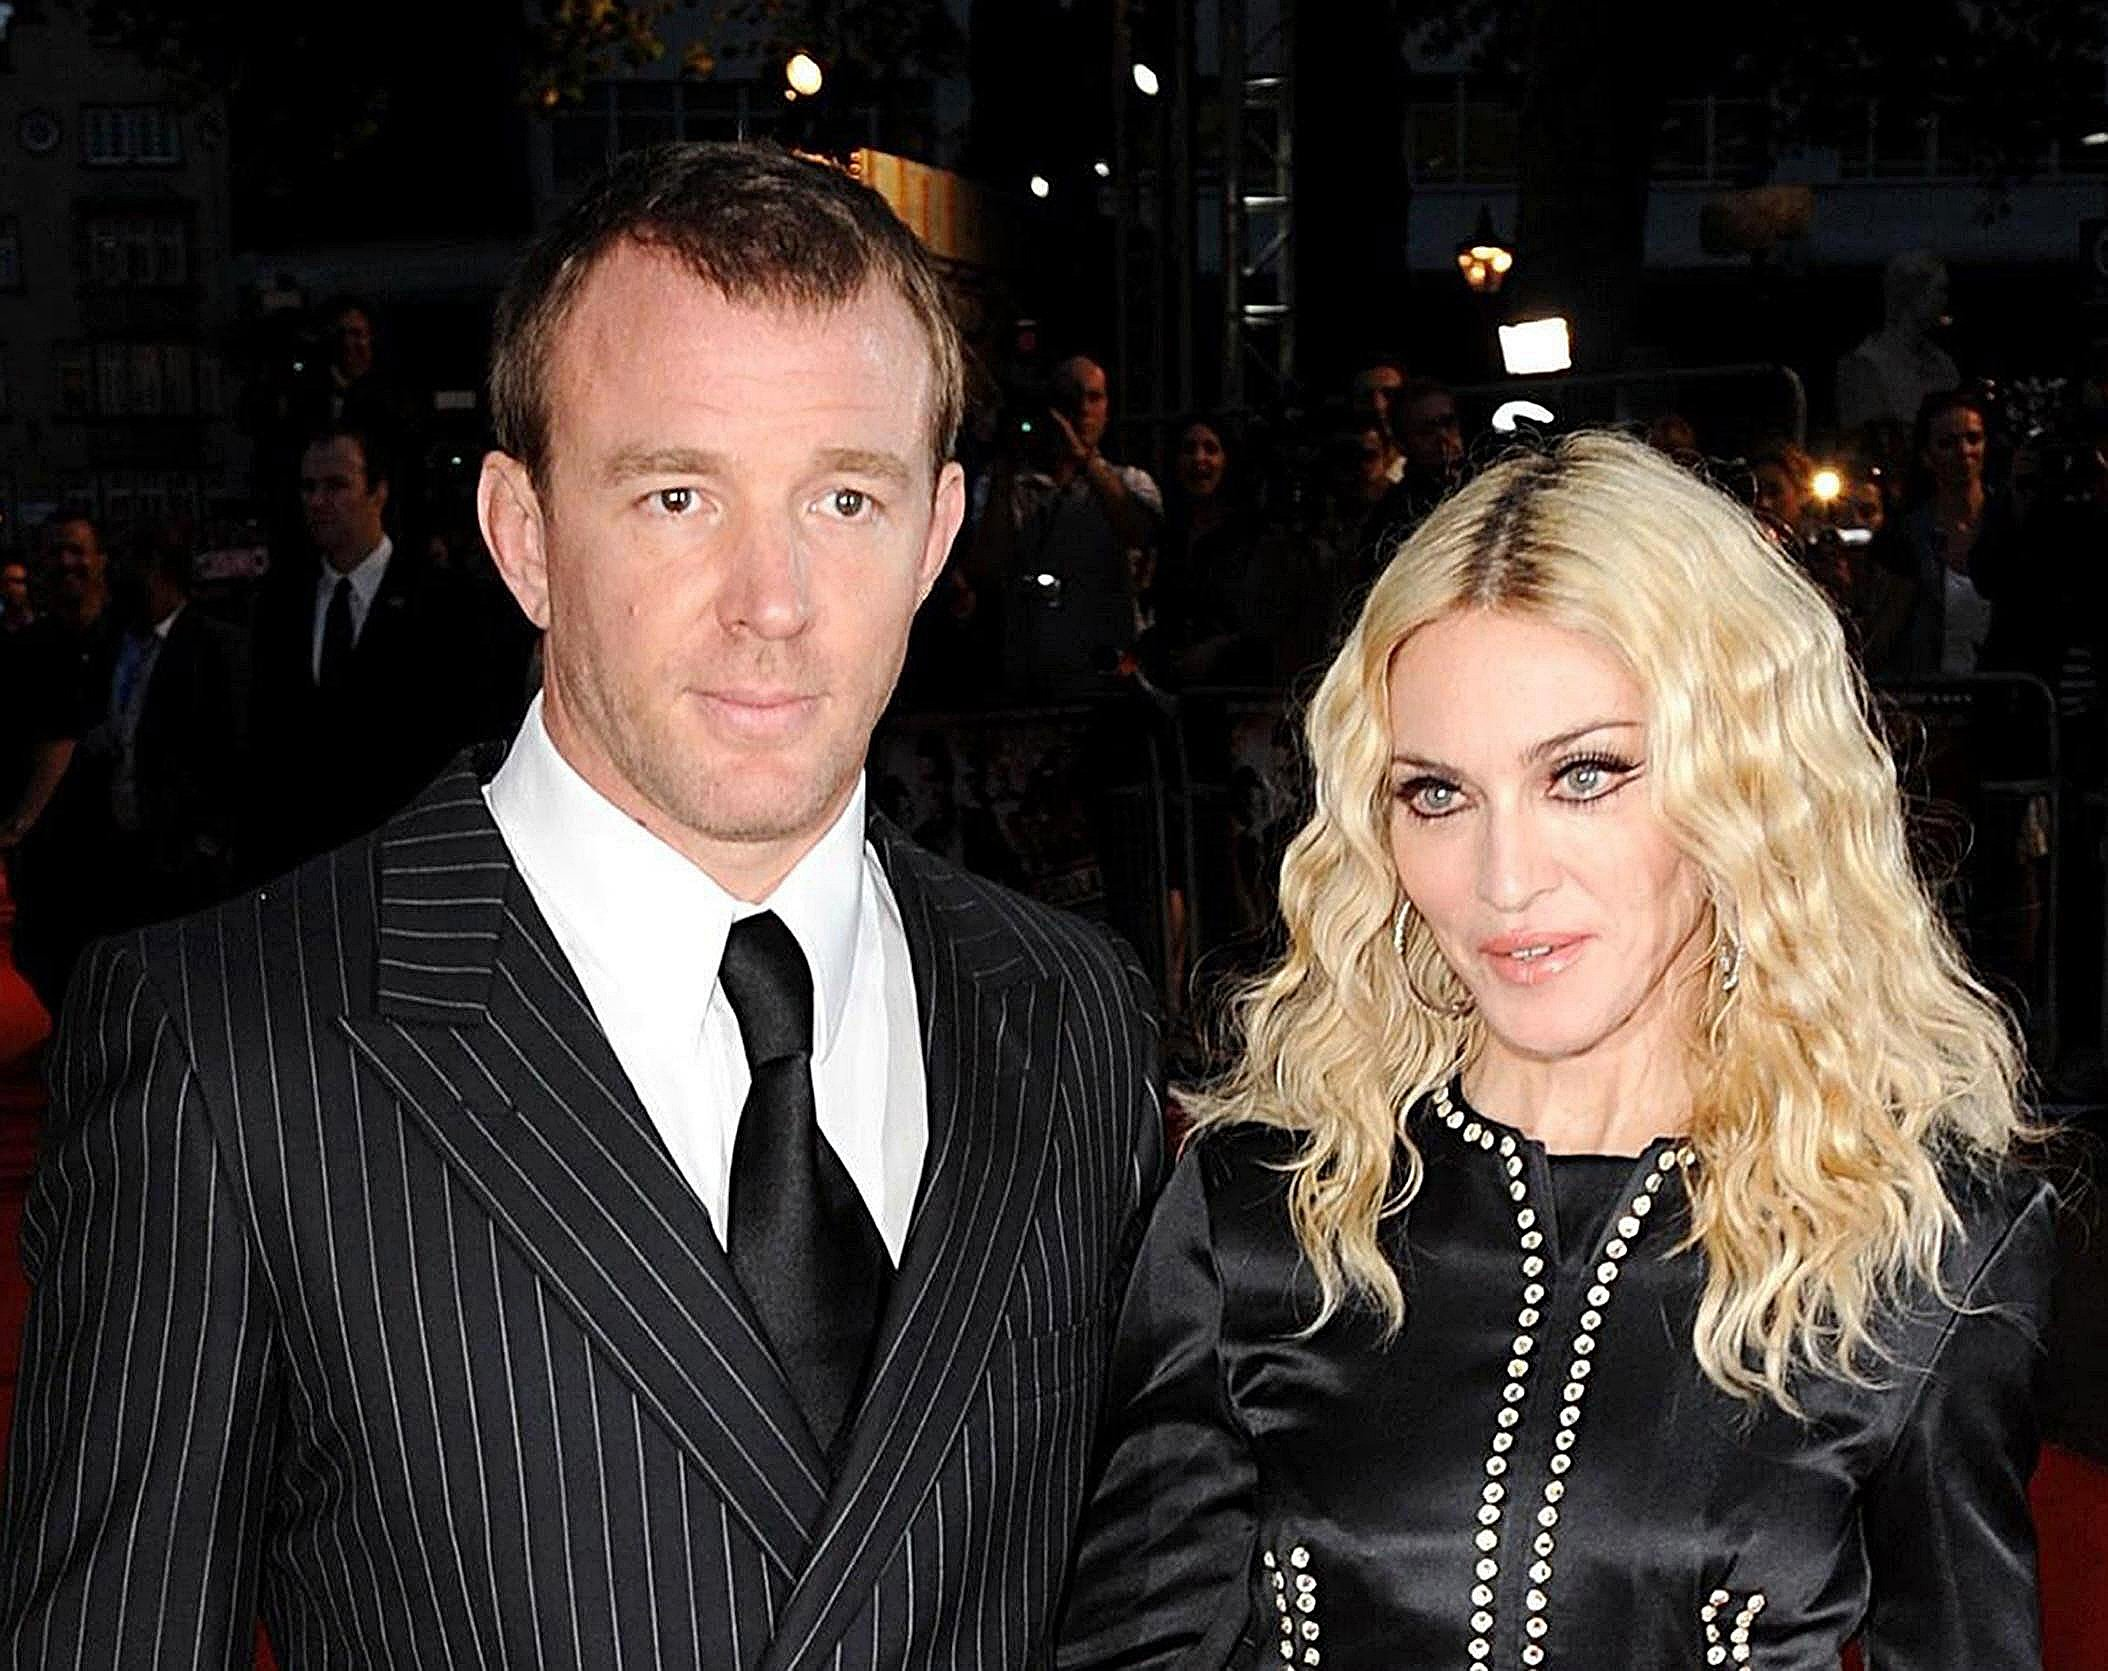 Madonna and Guy Ritchie settle their custody battle over son Rocco